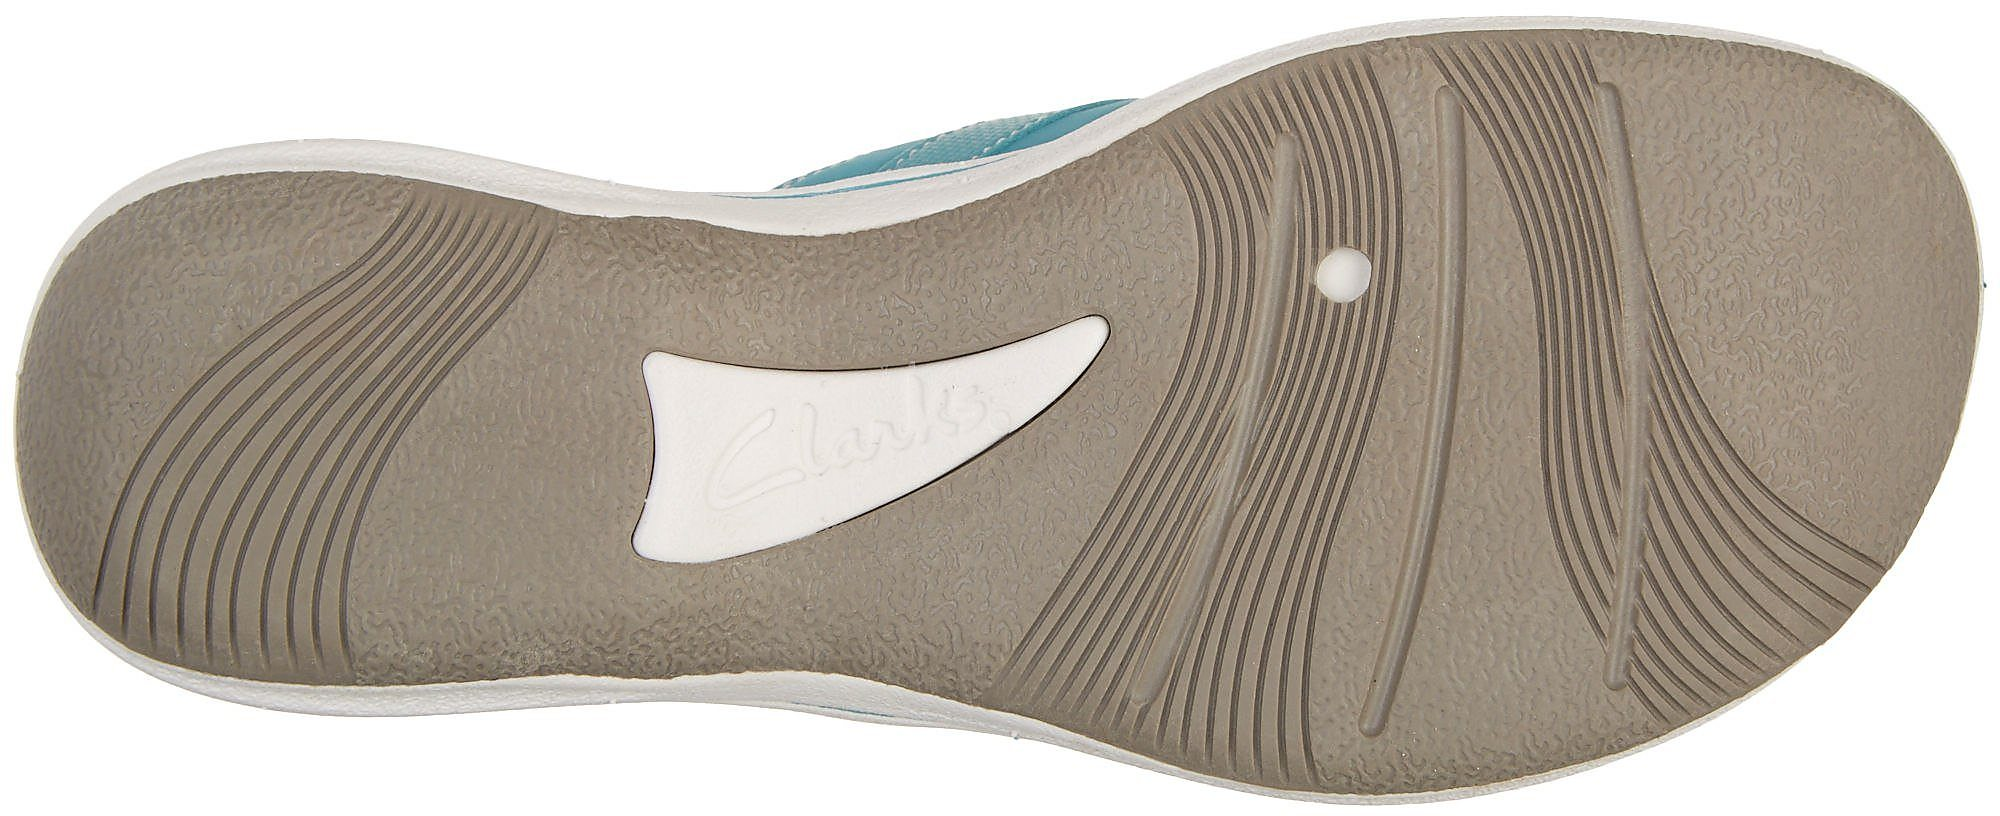 Clarks-Womens-Breeze-Sea-Flip-Flops-Comfort-Summer-Sandals thumbnail 4